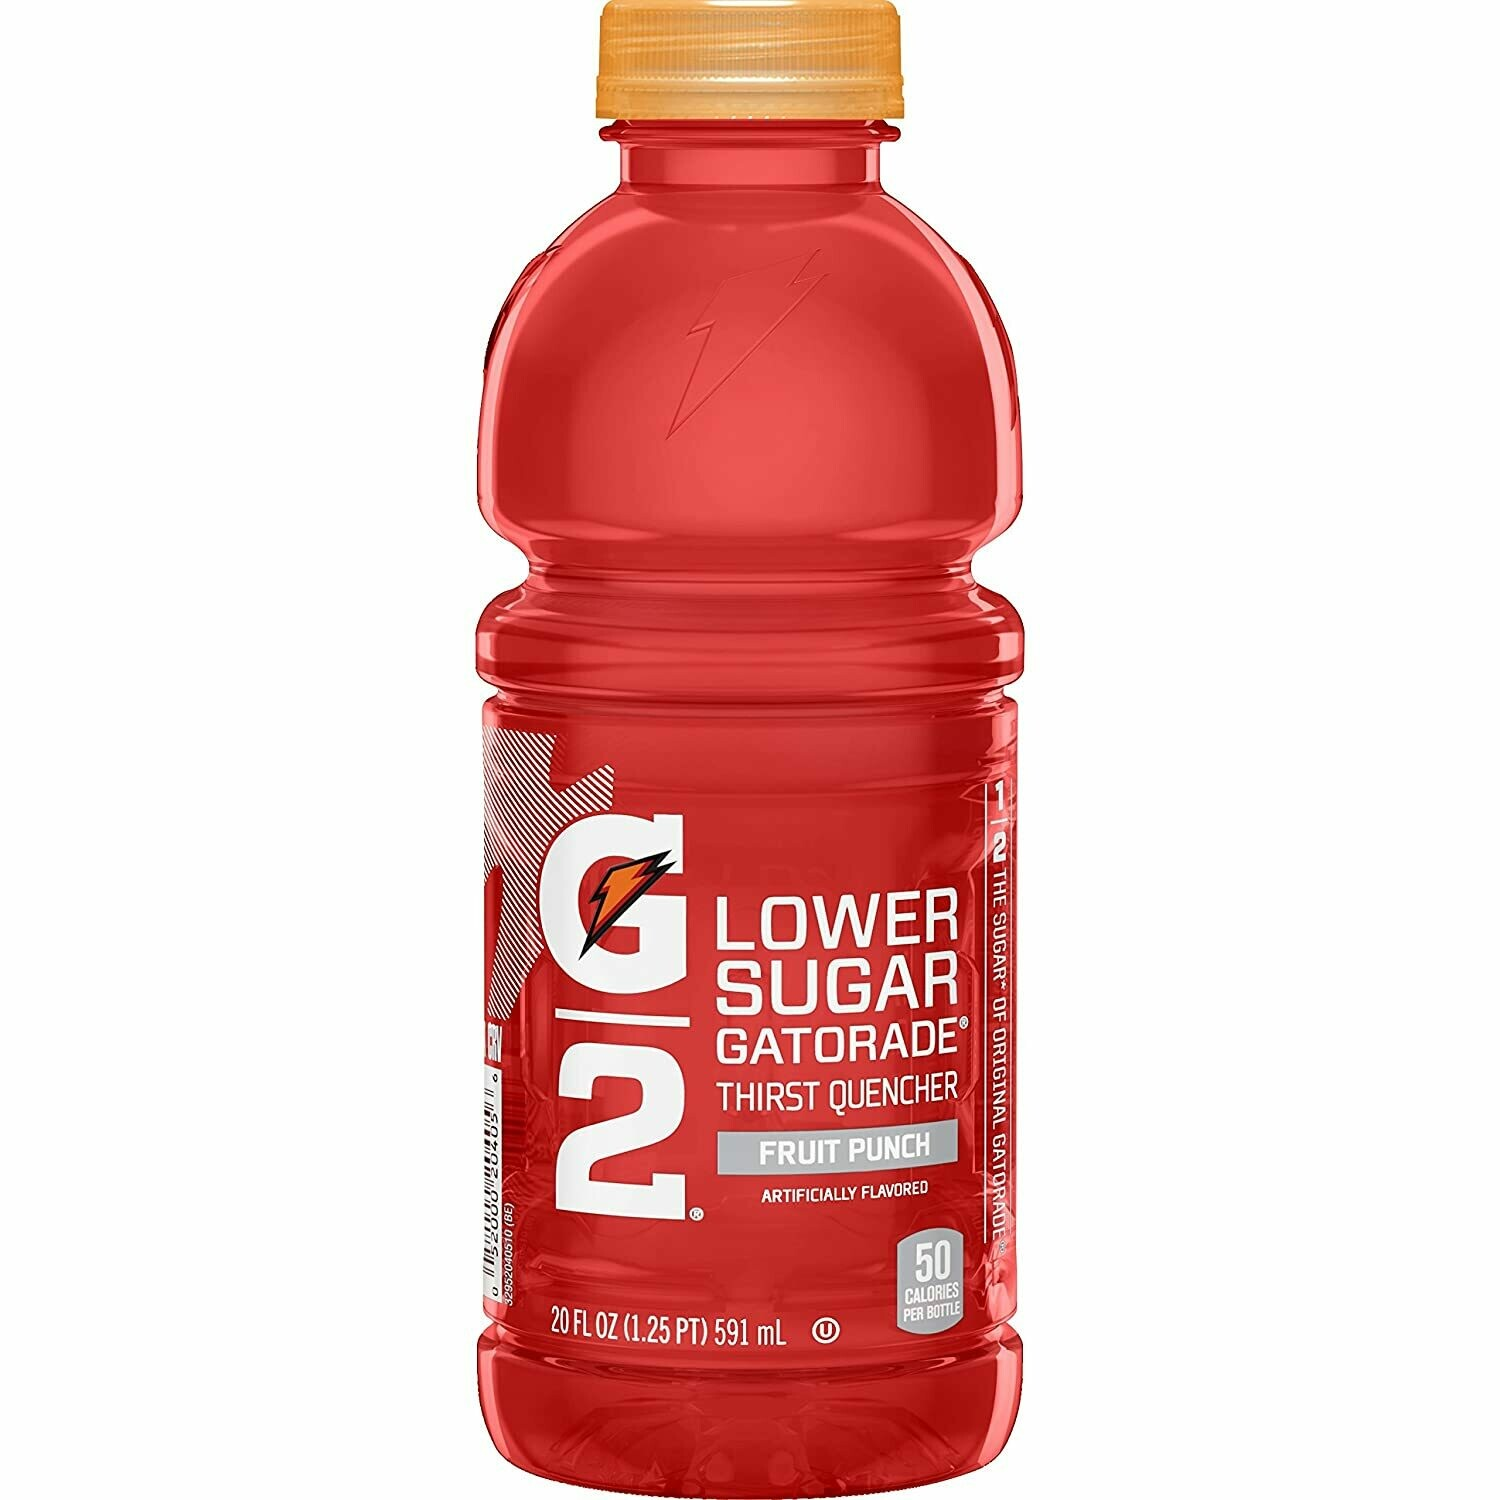 Gatorade Low Sugar Fruit Punch 20oz